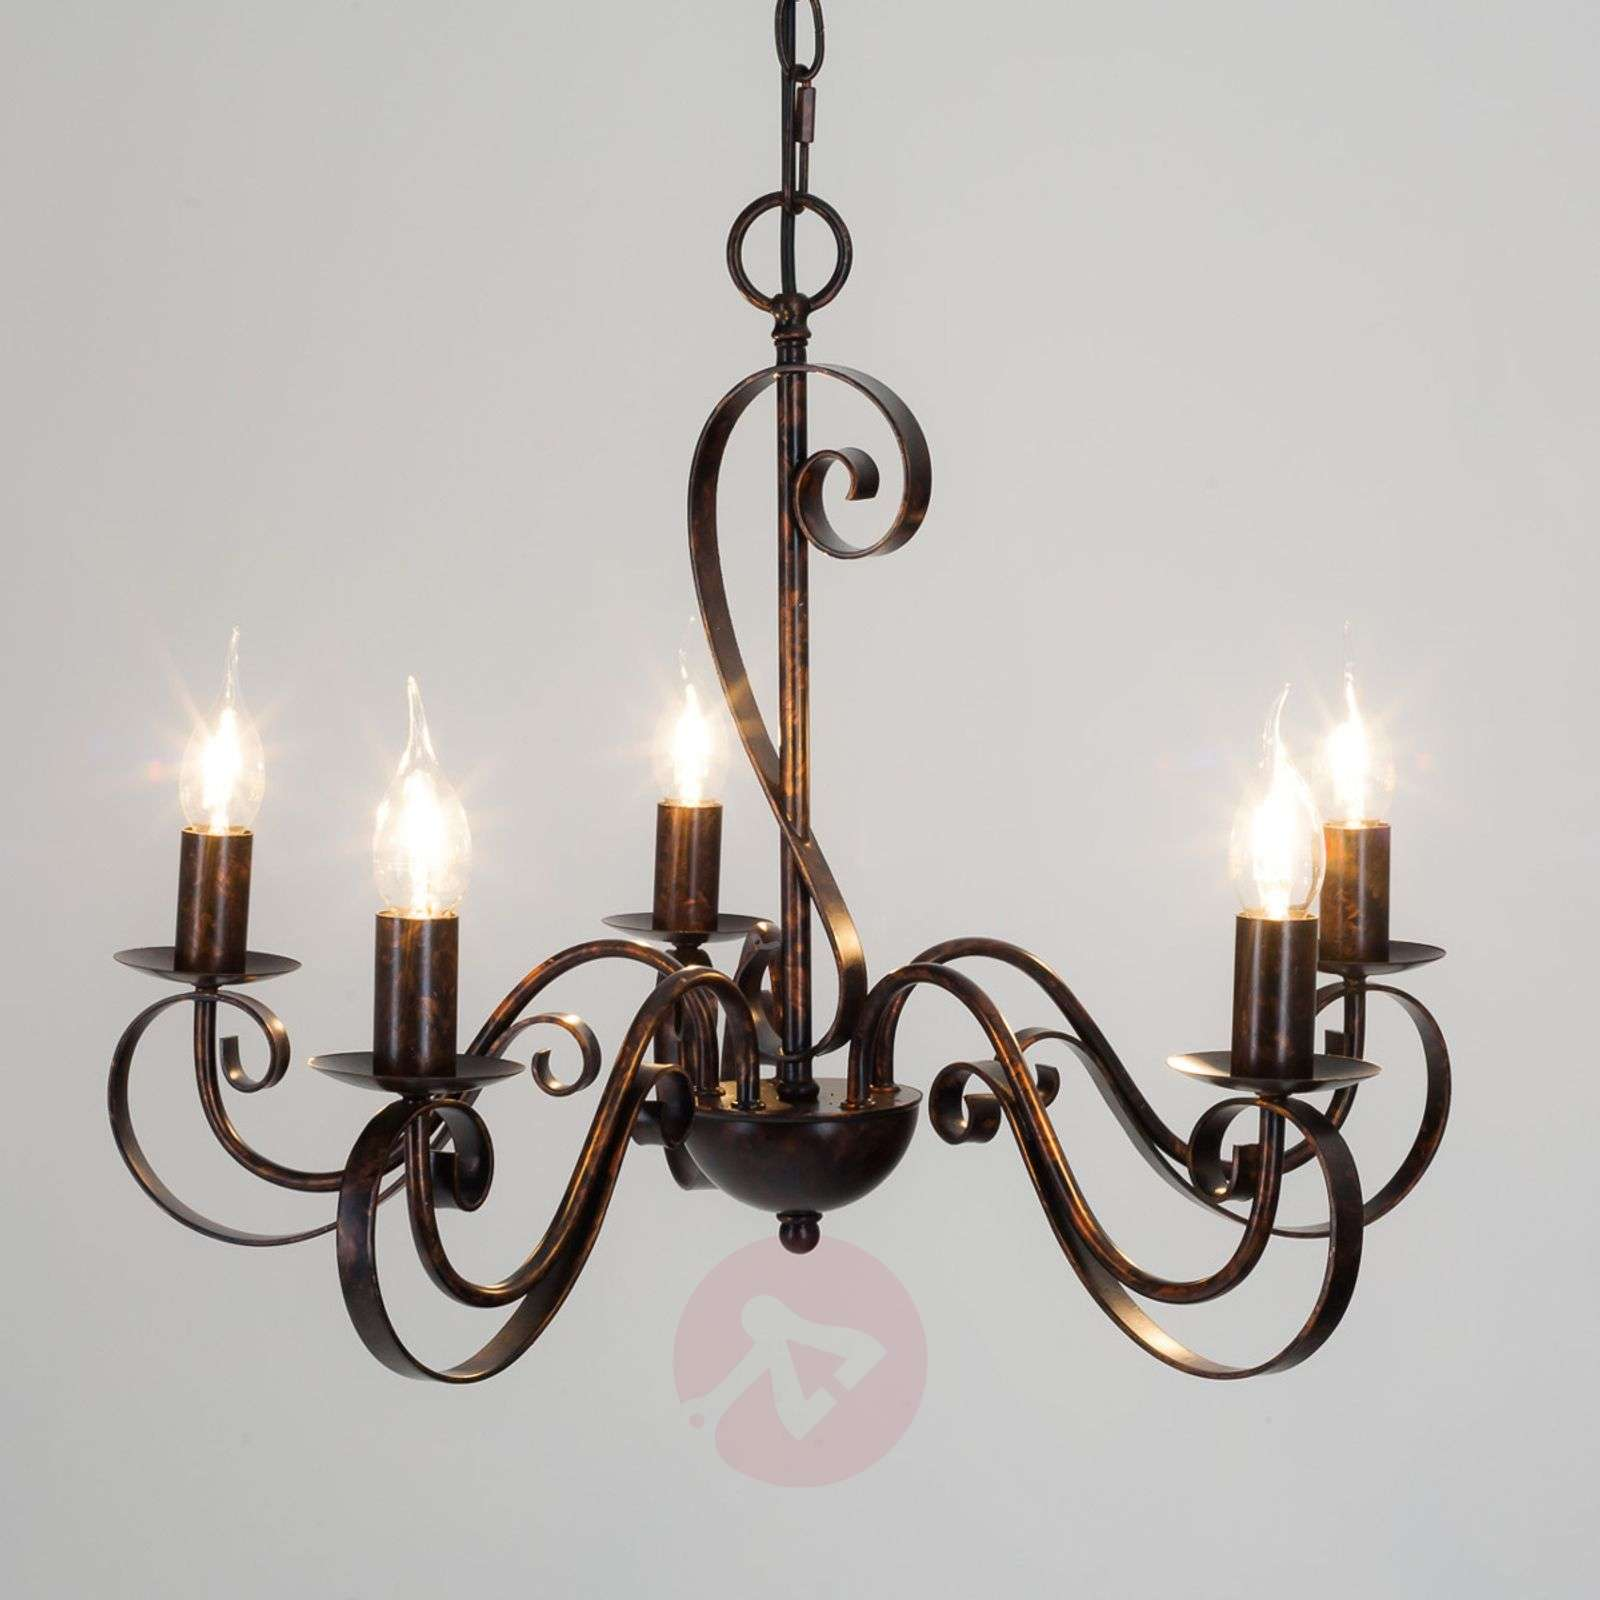 5 light rust coloured chandelier caleb lights 5 light rust coloured chandelier caleb 9620530 01 aloadofball Images